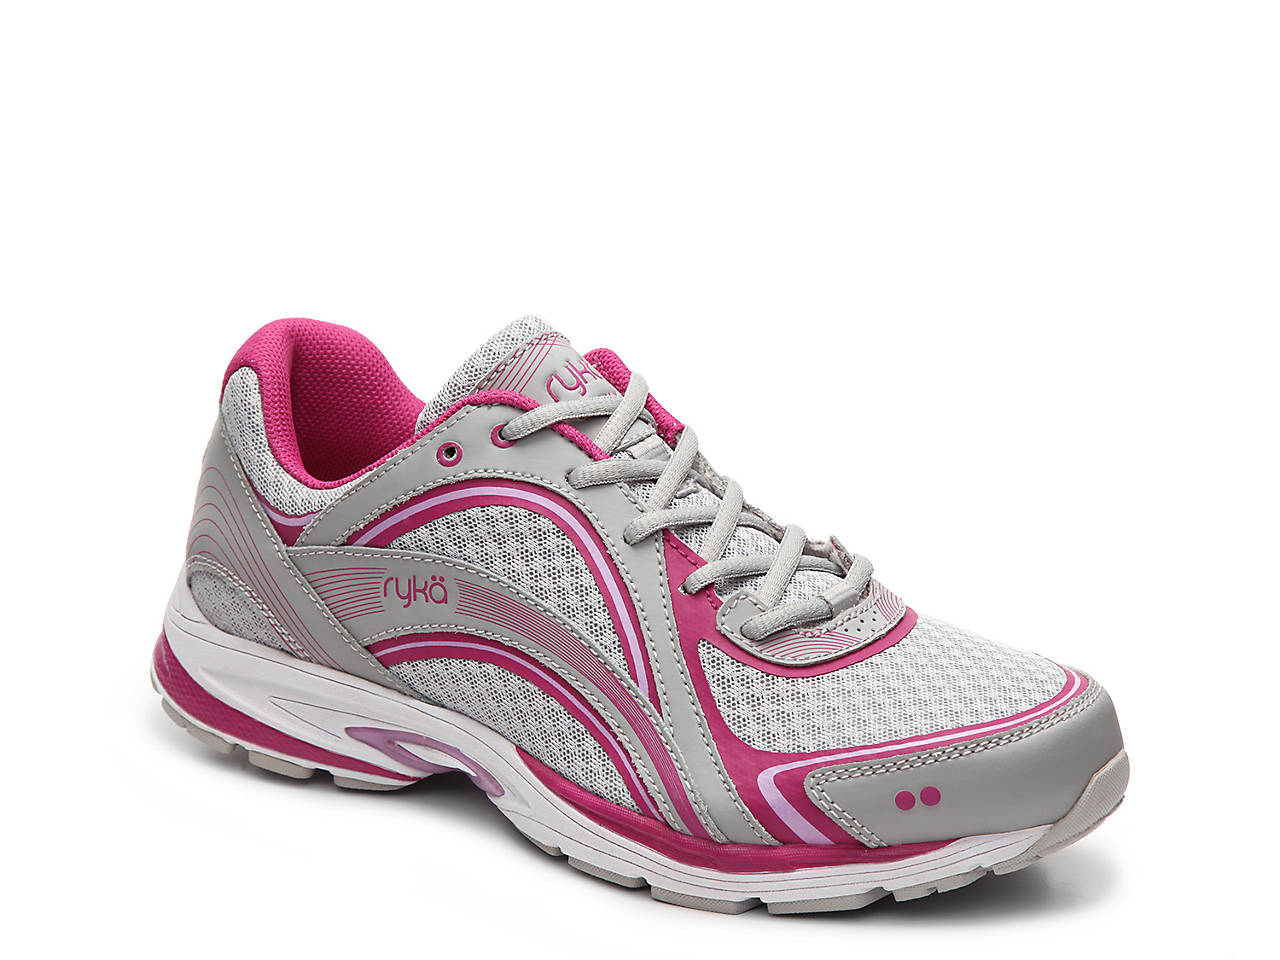 Sky Walk Walking Shoe - Women's